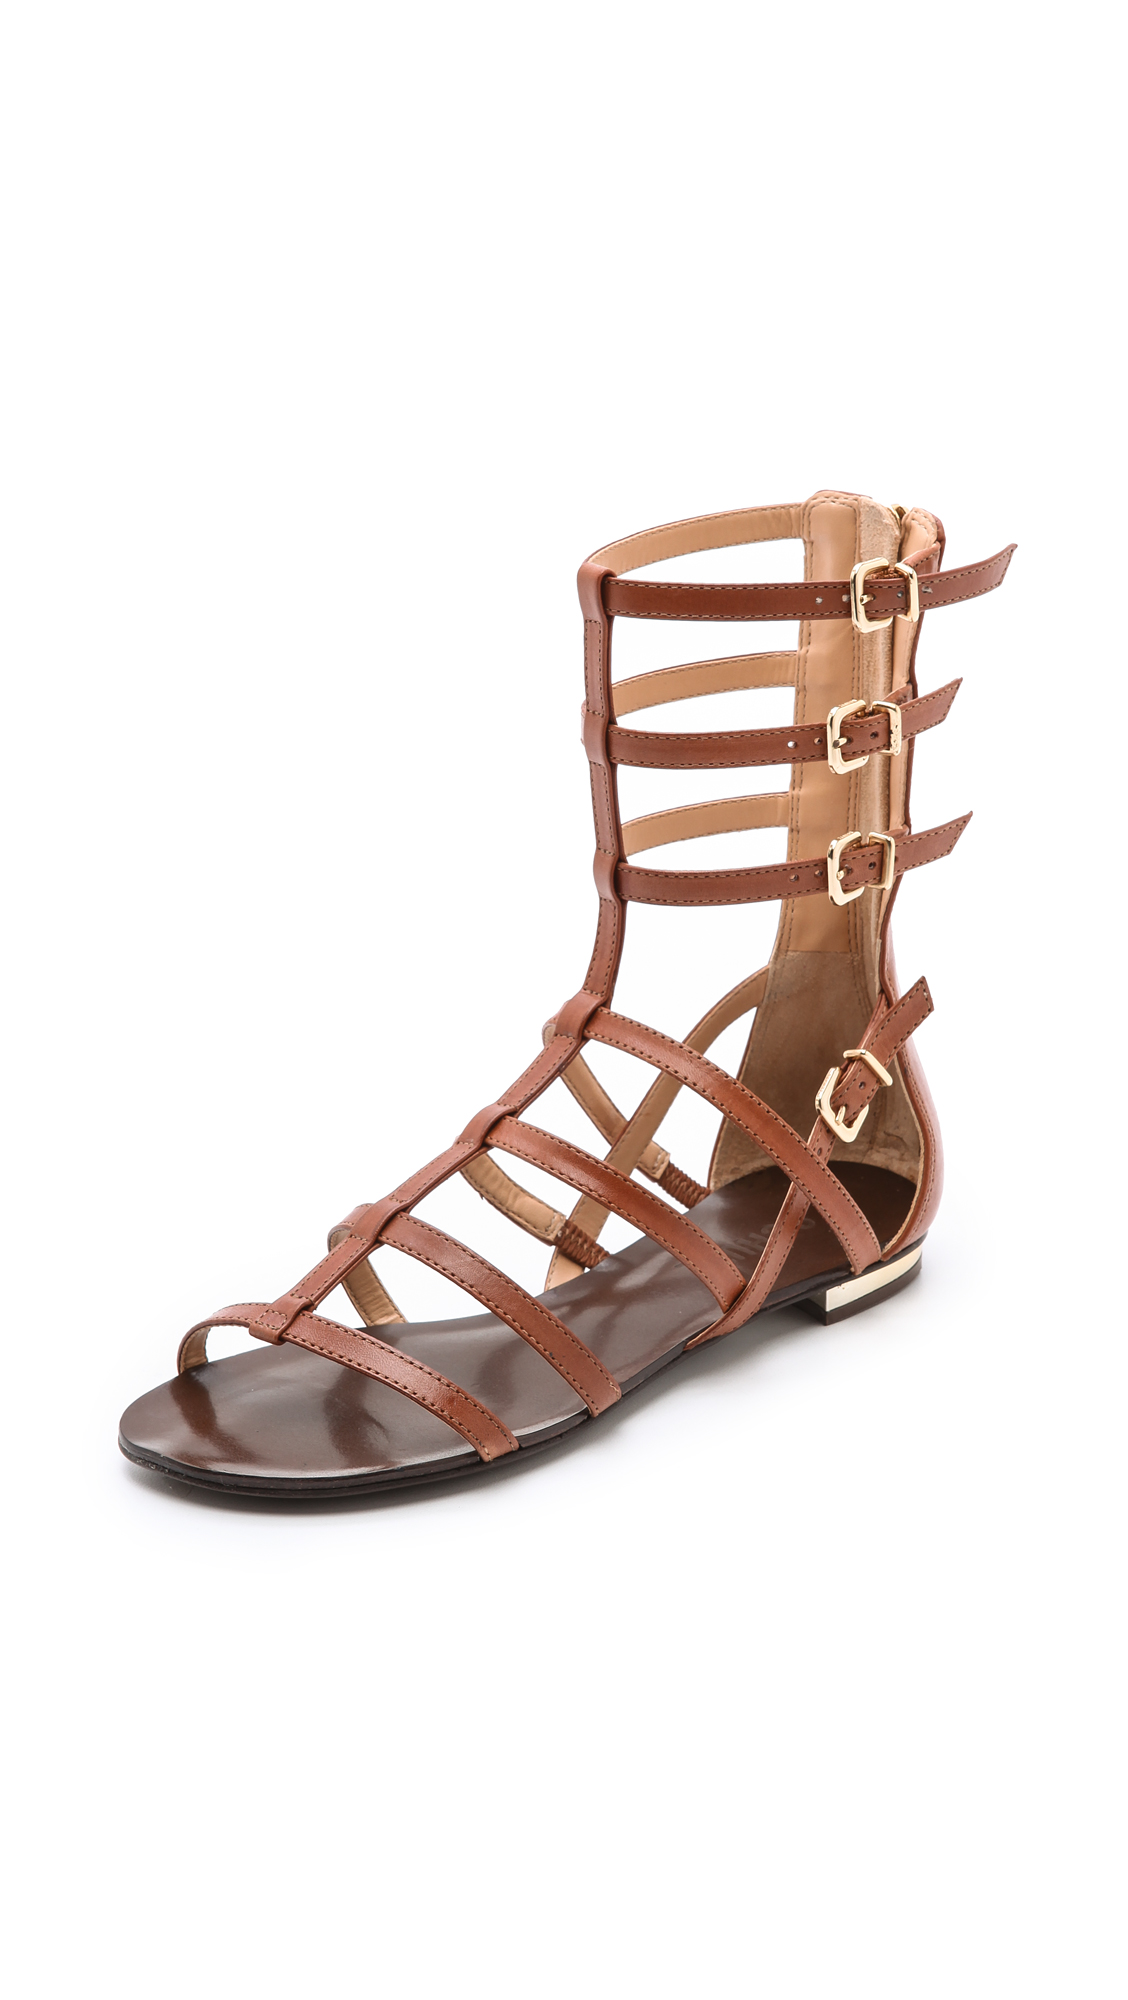 Schutz Fanny Gladiator Sandals in Brown | Lyst